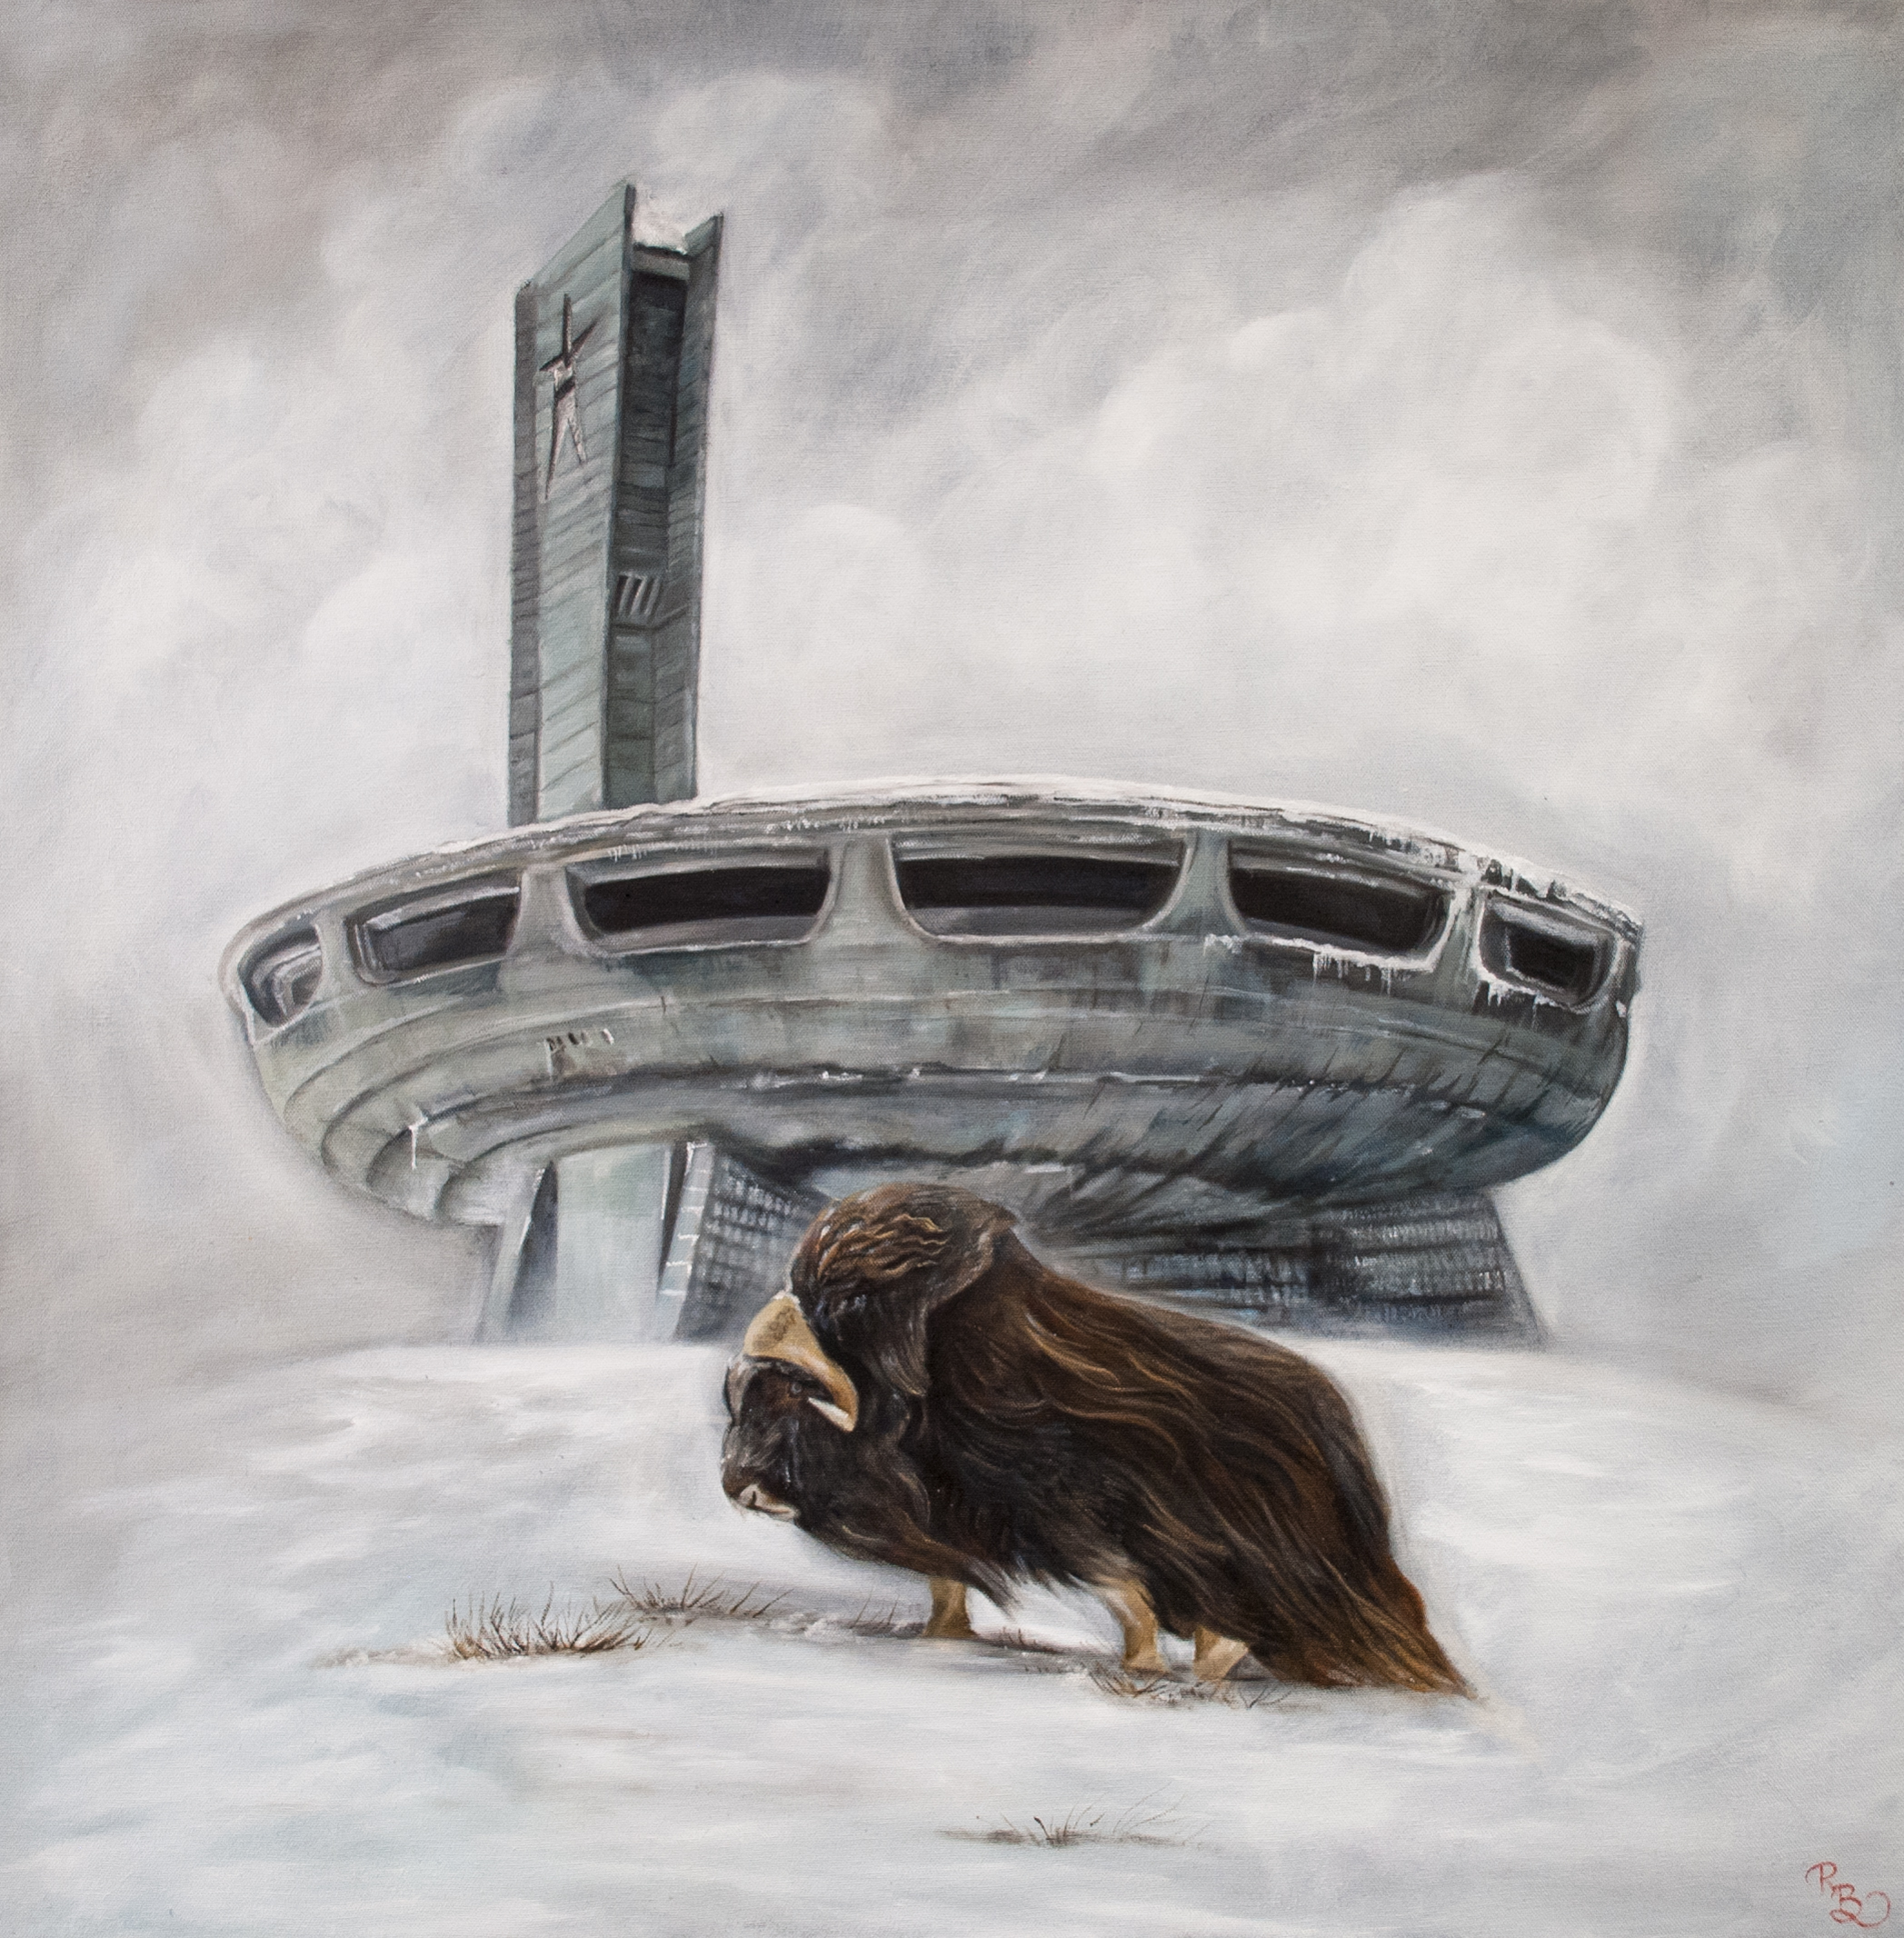 single musk ox in the middle of a blizzard with a Soviet Union military base in the background